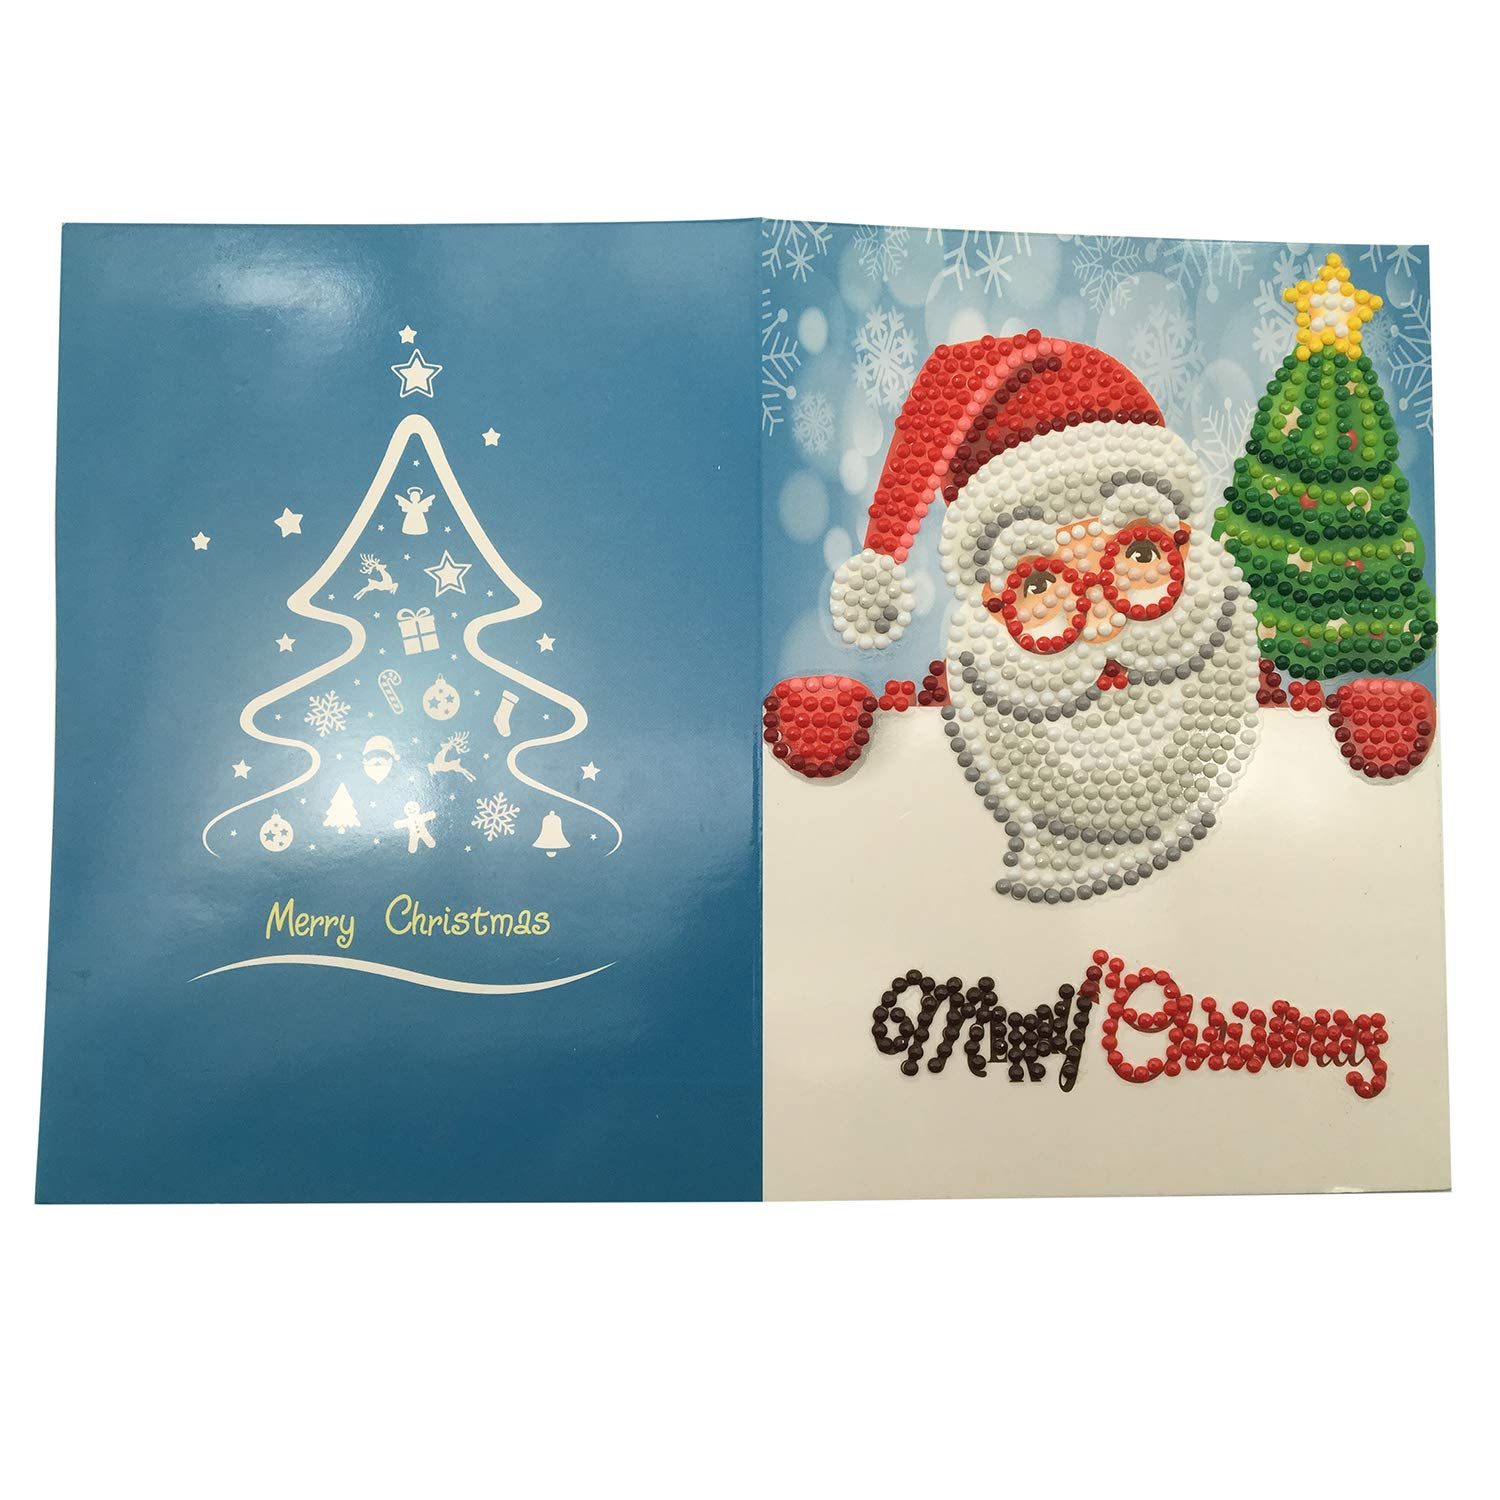 Christmas Creative Cards 5D DIY Diamond Painting Rhinestone Pictures of Crystals Embroidery Kits Arts Round Drill Greeting Thank You Cards Creative (8) Nacido Perfecto